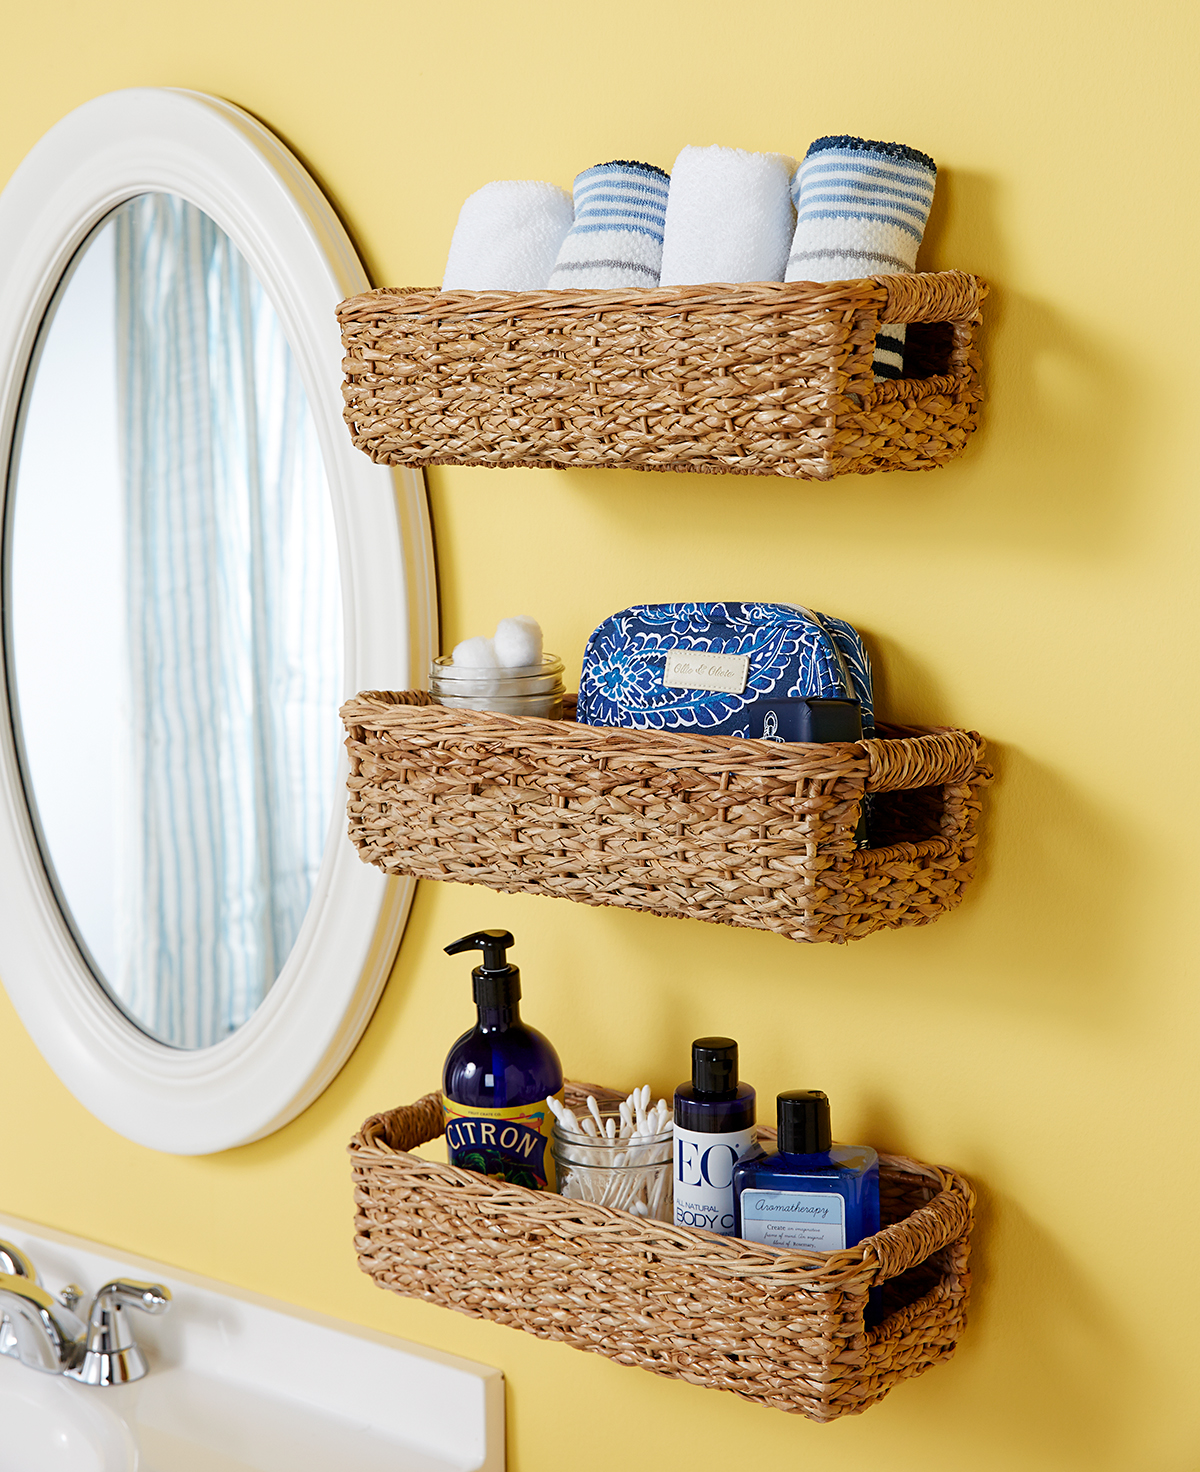 baskets used on wall for bathroom storage